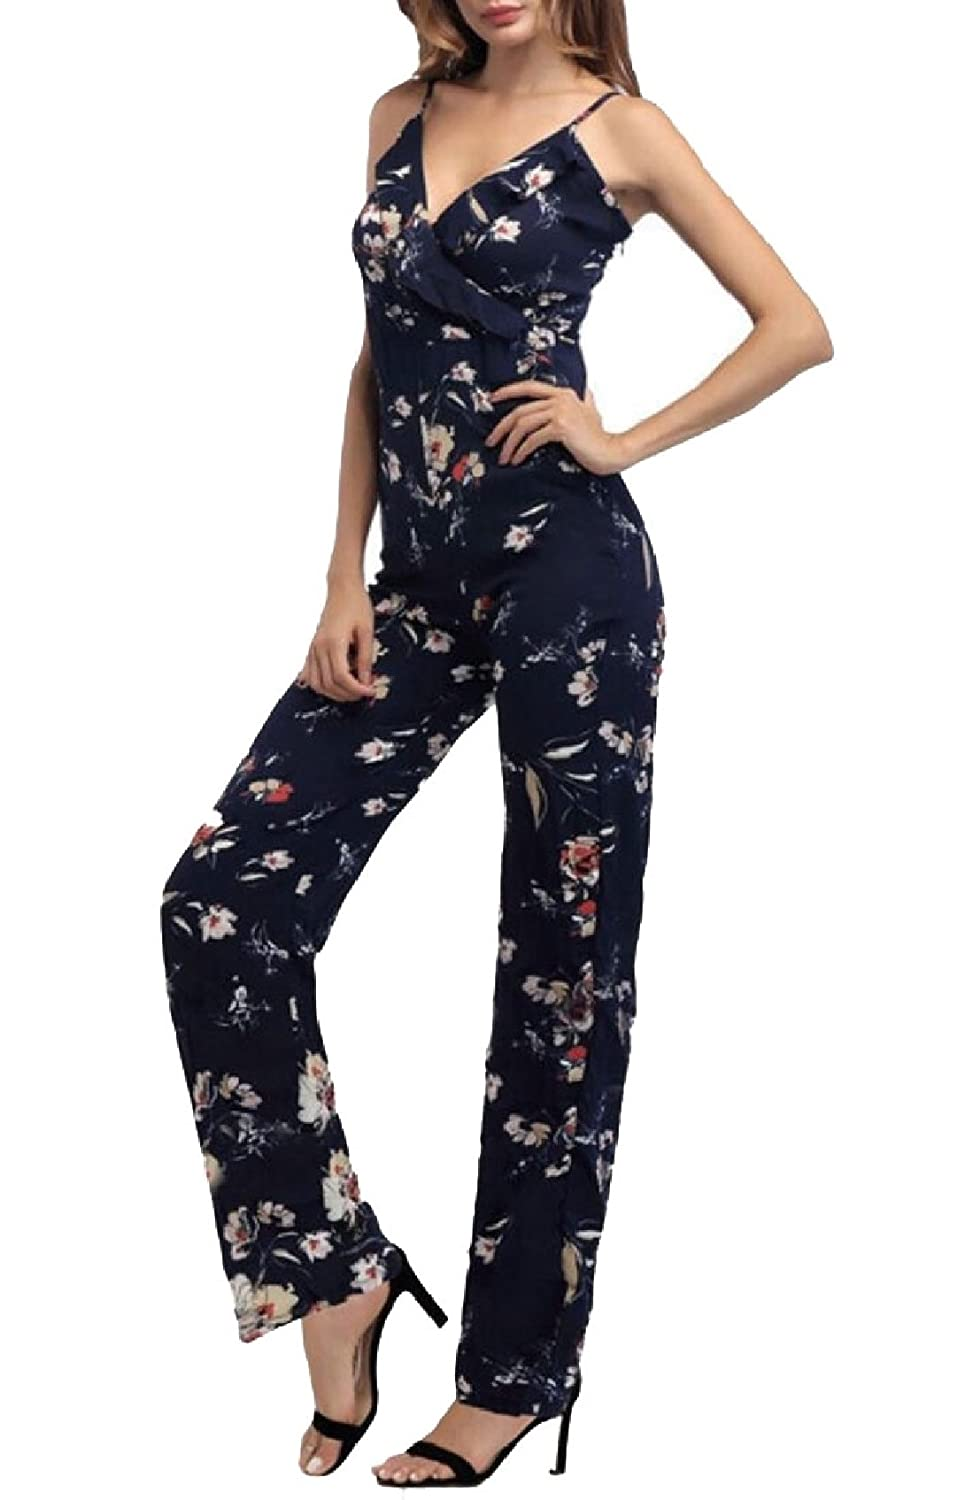 YONGM Women Camisole Casual Floral Print Pocket High Waisted Rompers